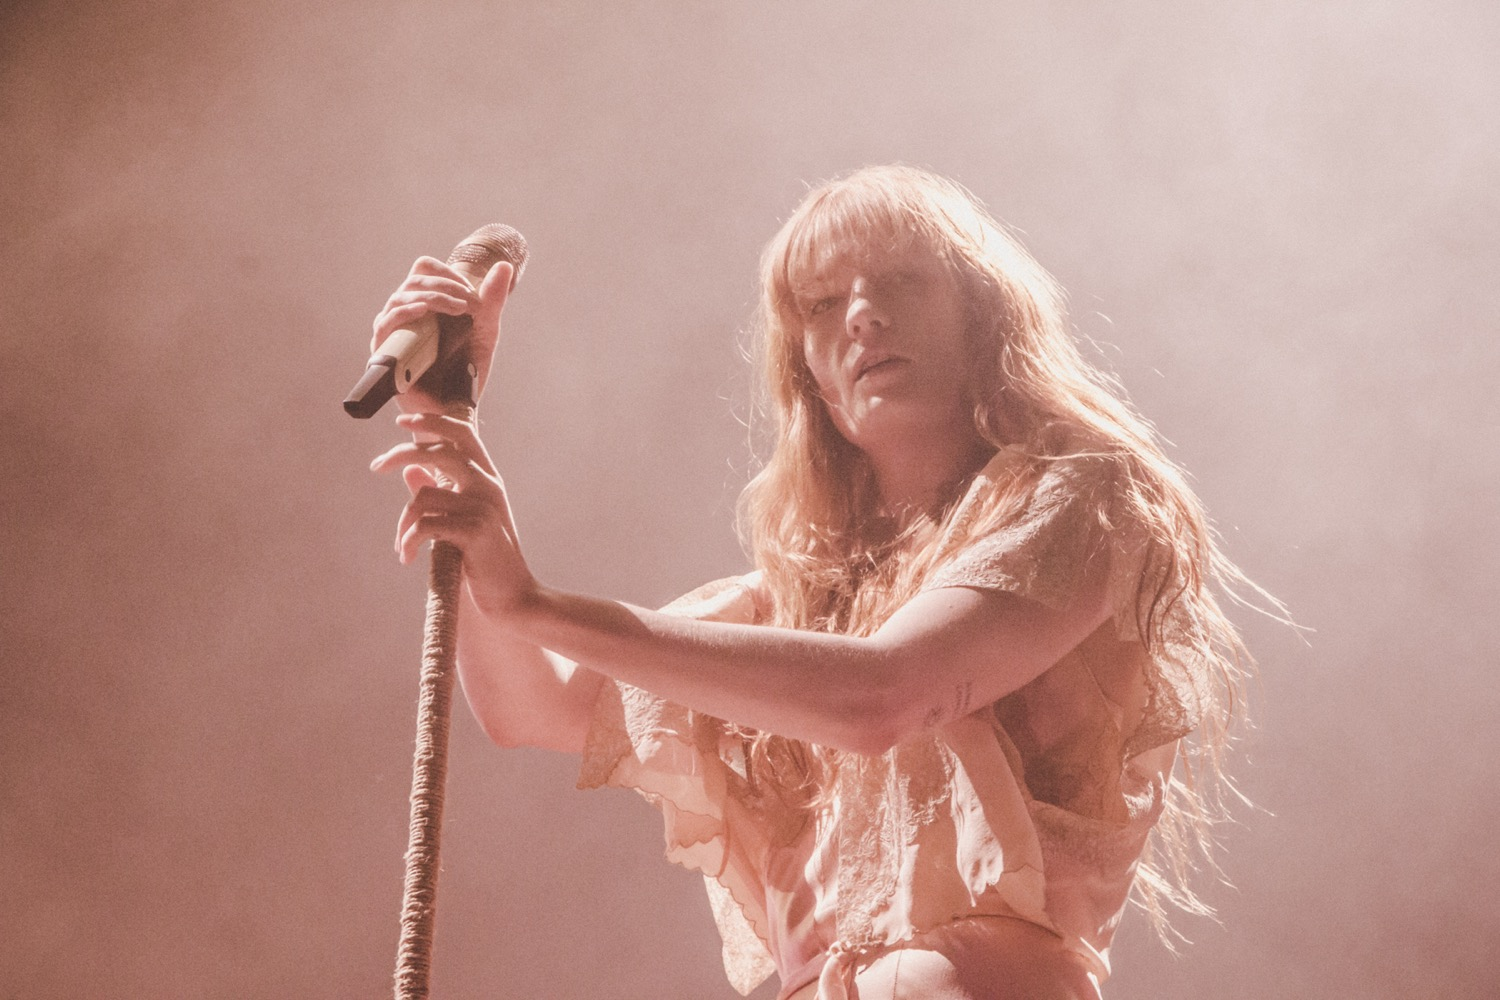 Florence and the Machine, photo by Lior Phillips